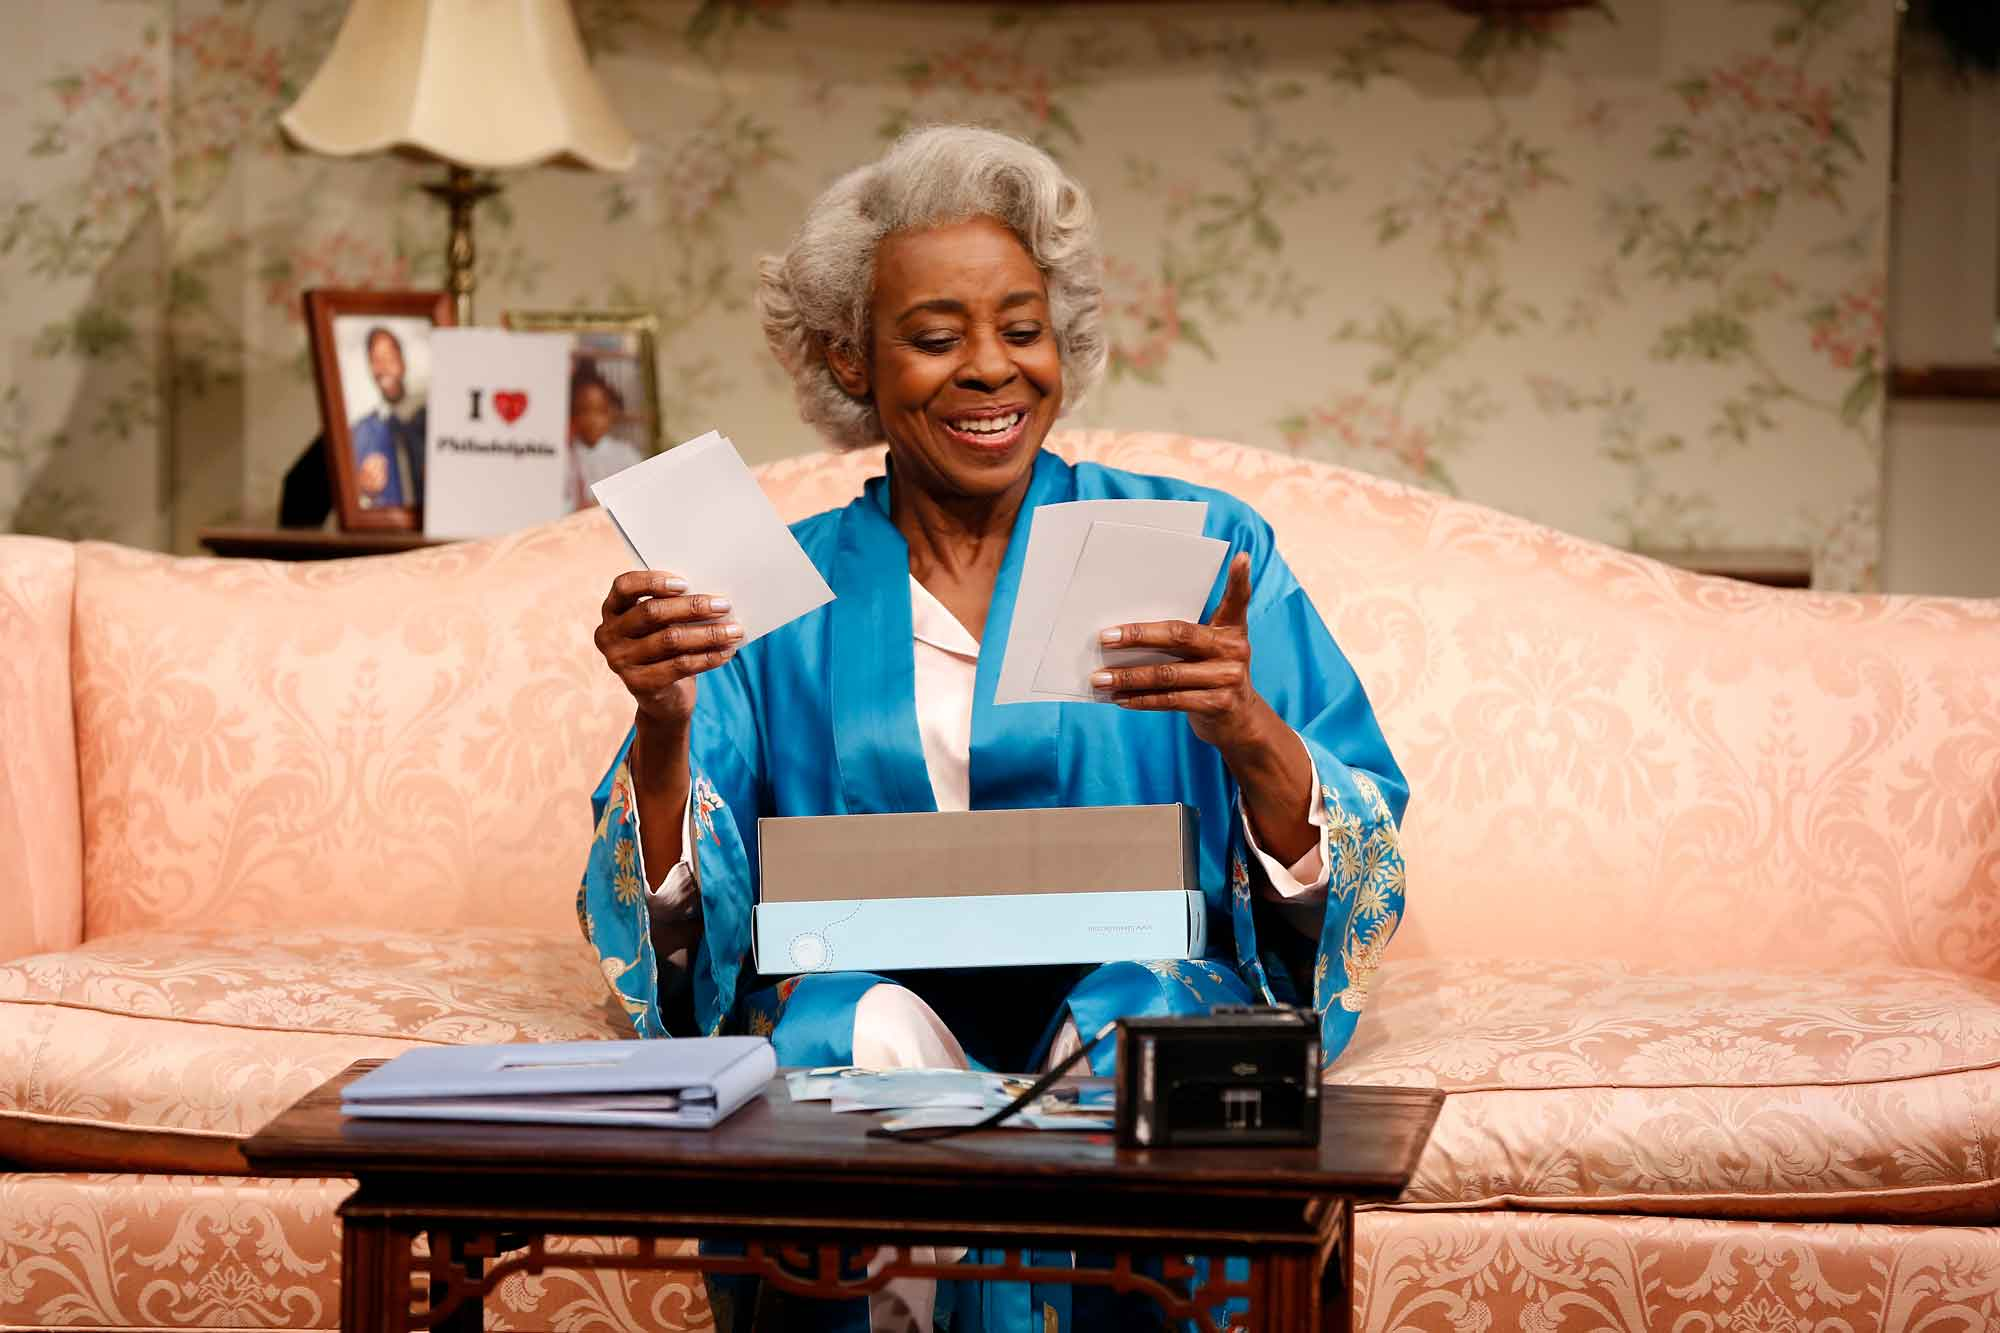 Elderly Black woman looking at printed photos out of a box.